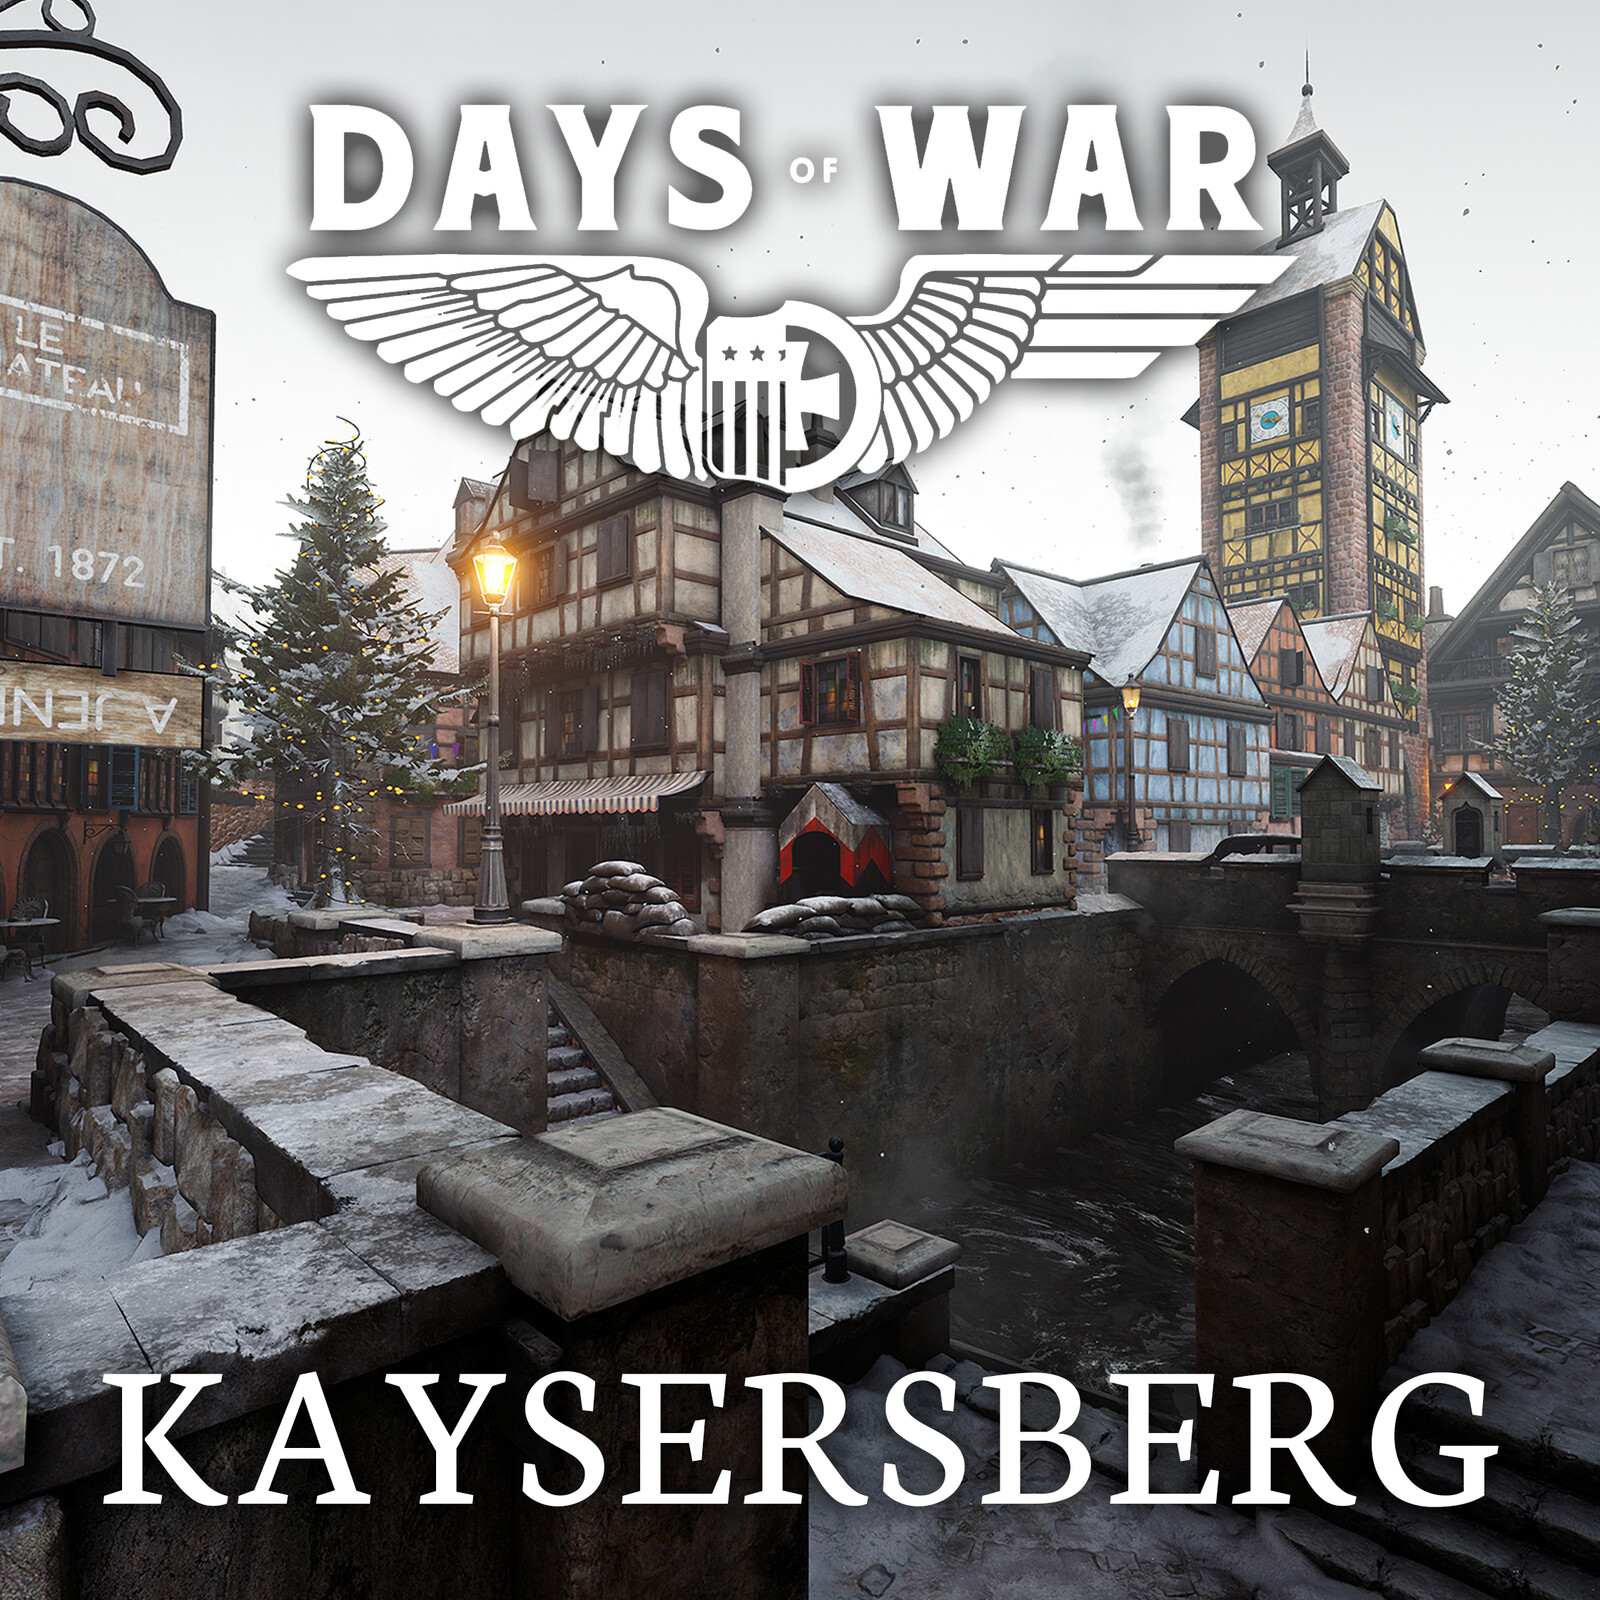 Days of War - kaysersberg